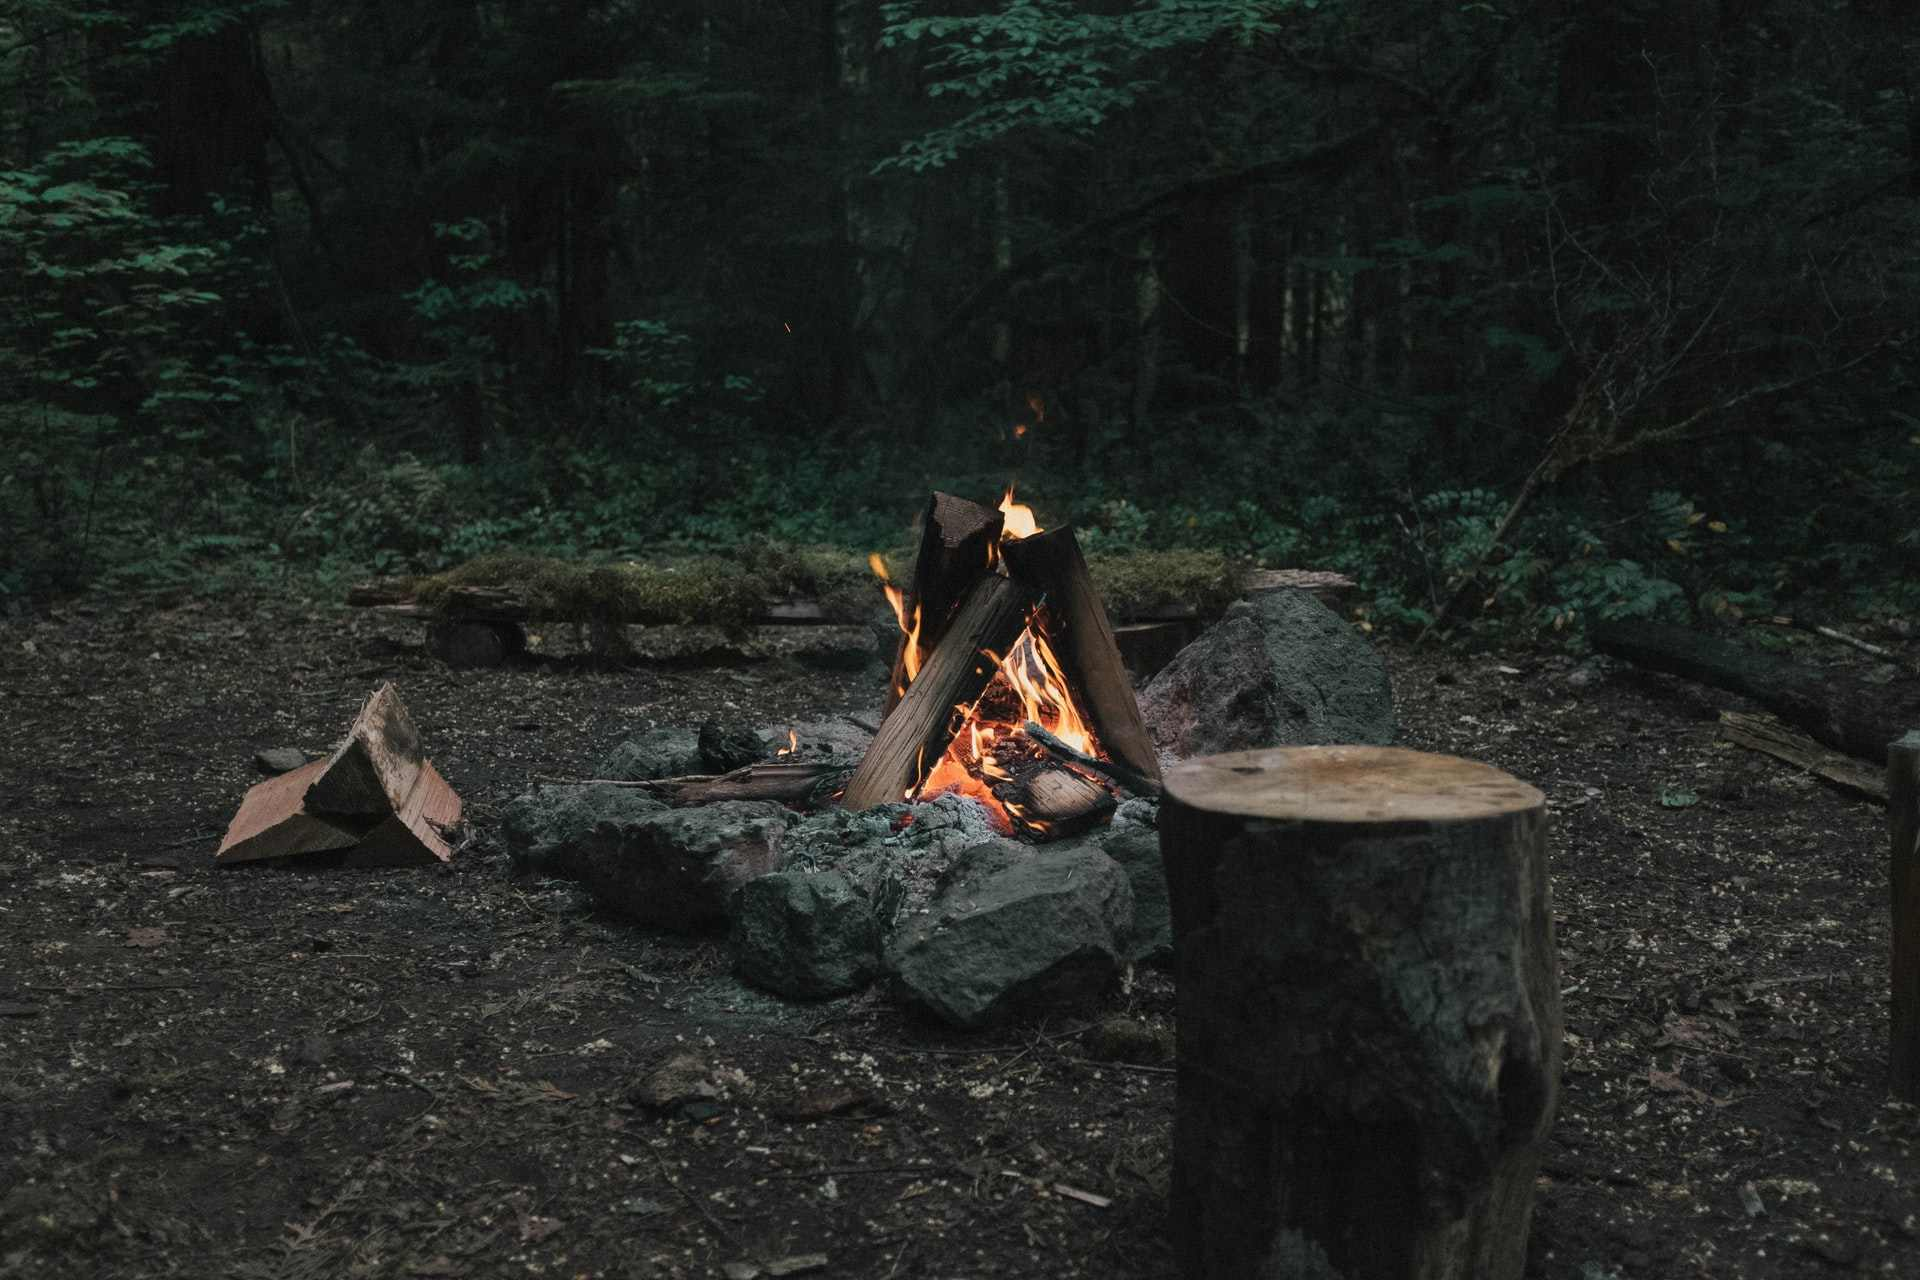 campfire-in-forest-as-sun-goes-down-eco-friendly-camping